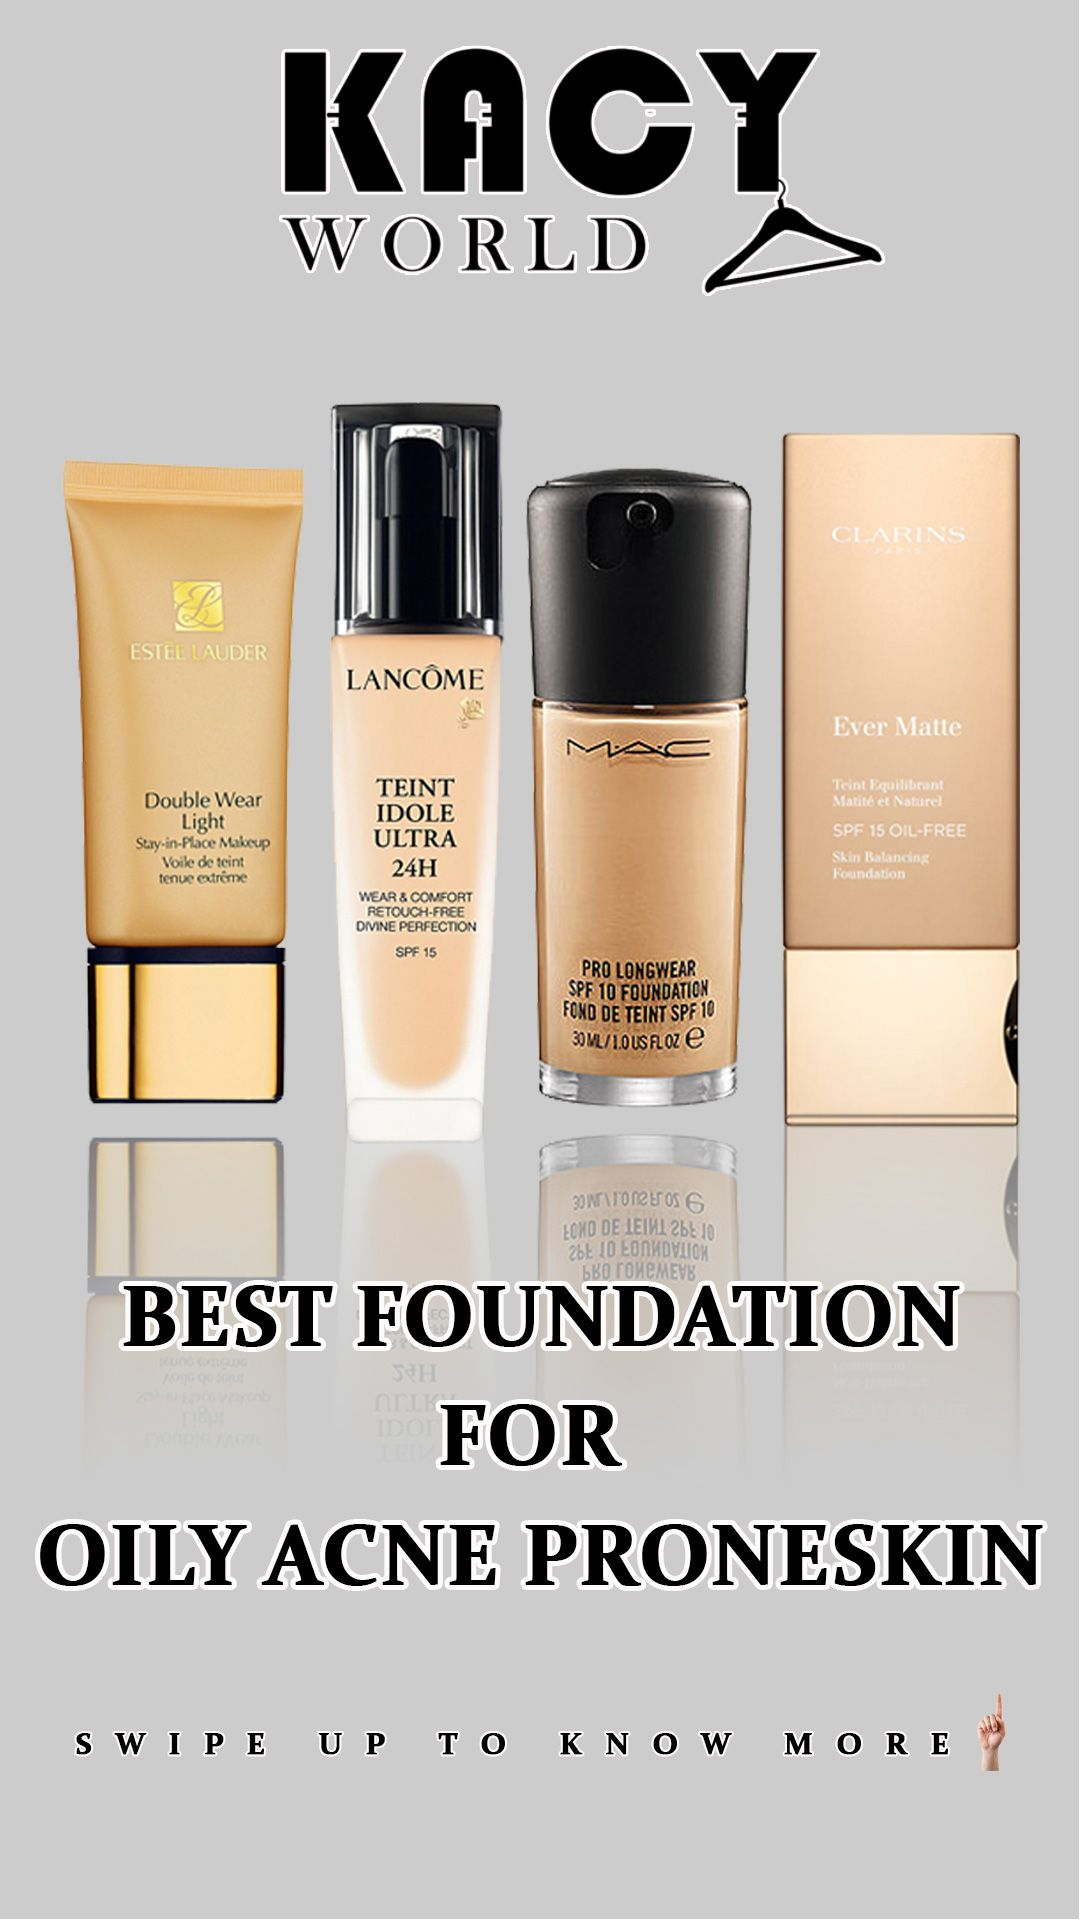 Best foundation for oily acne prone skin